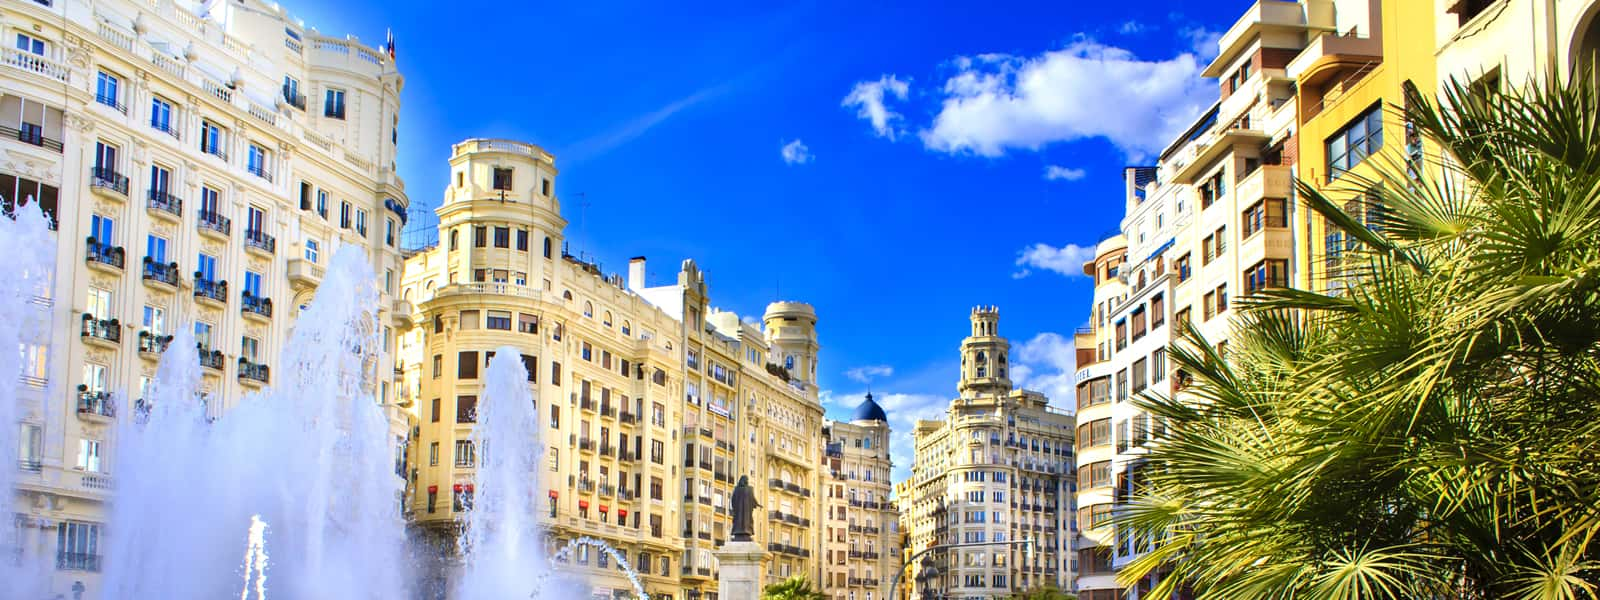 Main city square of Valencia, The Plaza del Ayuntamiento in bright afternoon colors, Spain